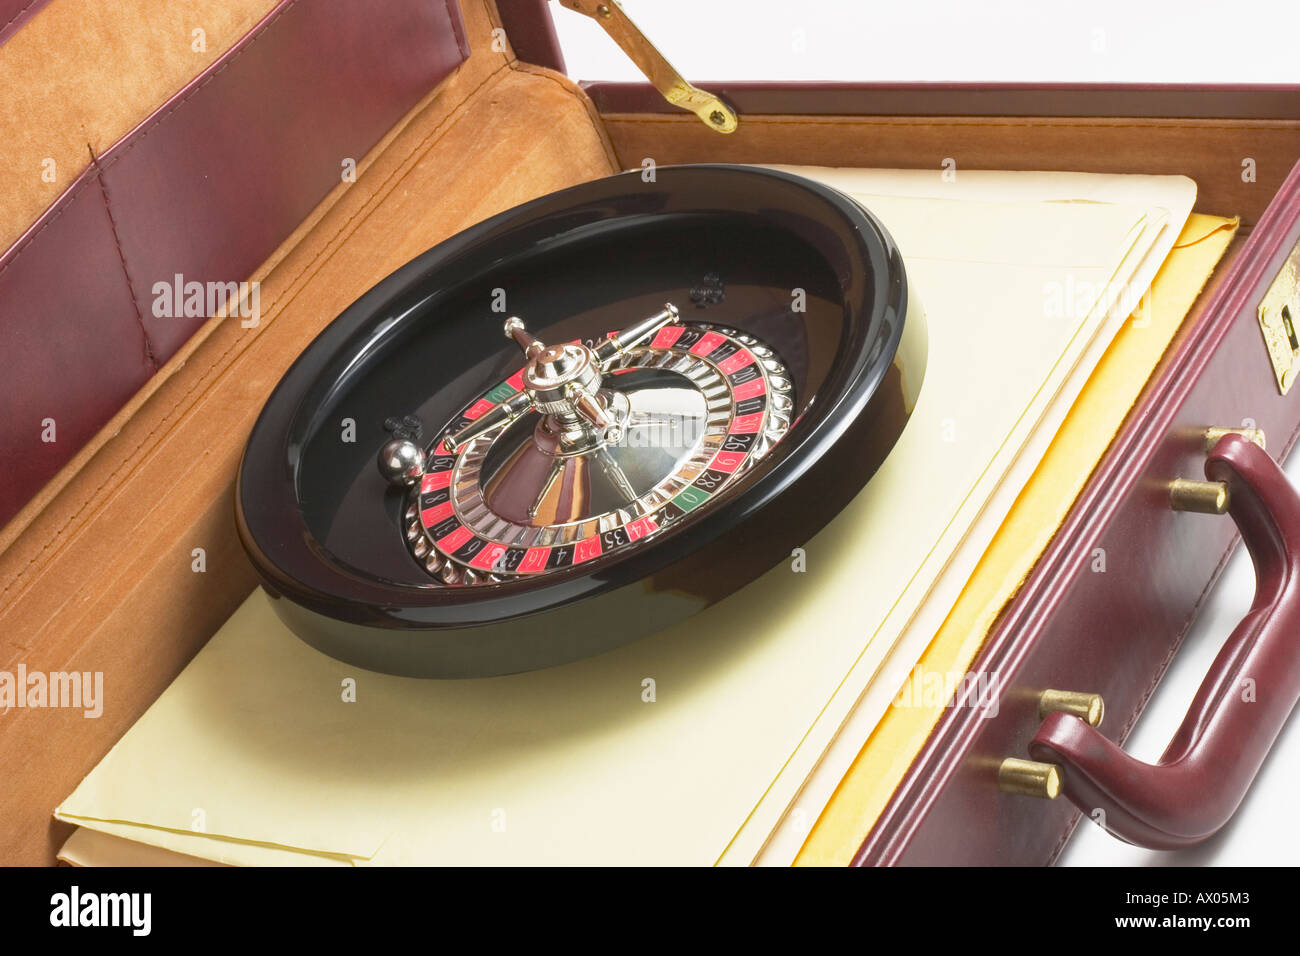 Toy Roulette Wheel in Briefcase - Stock Image